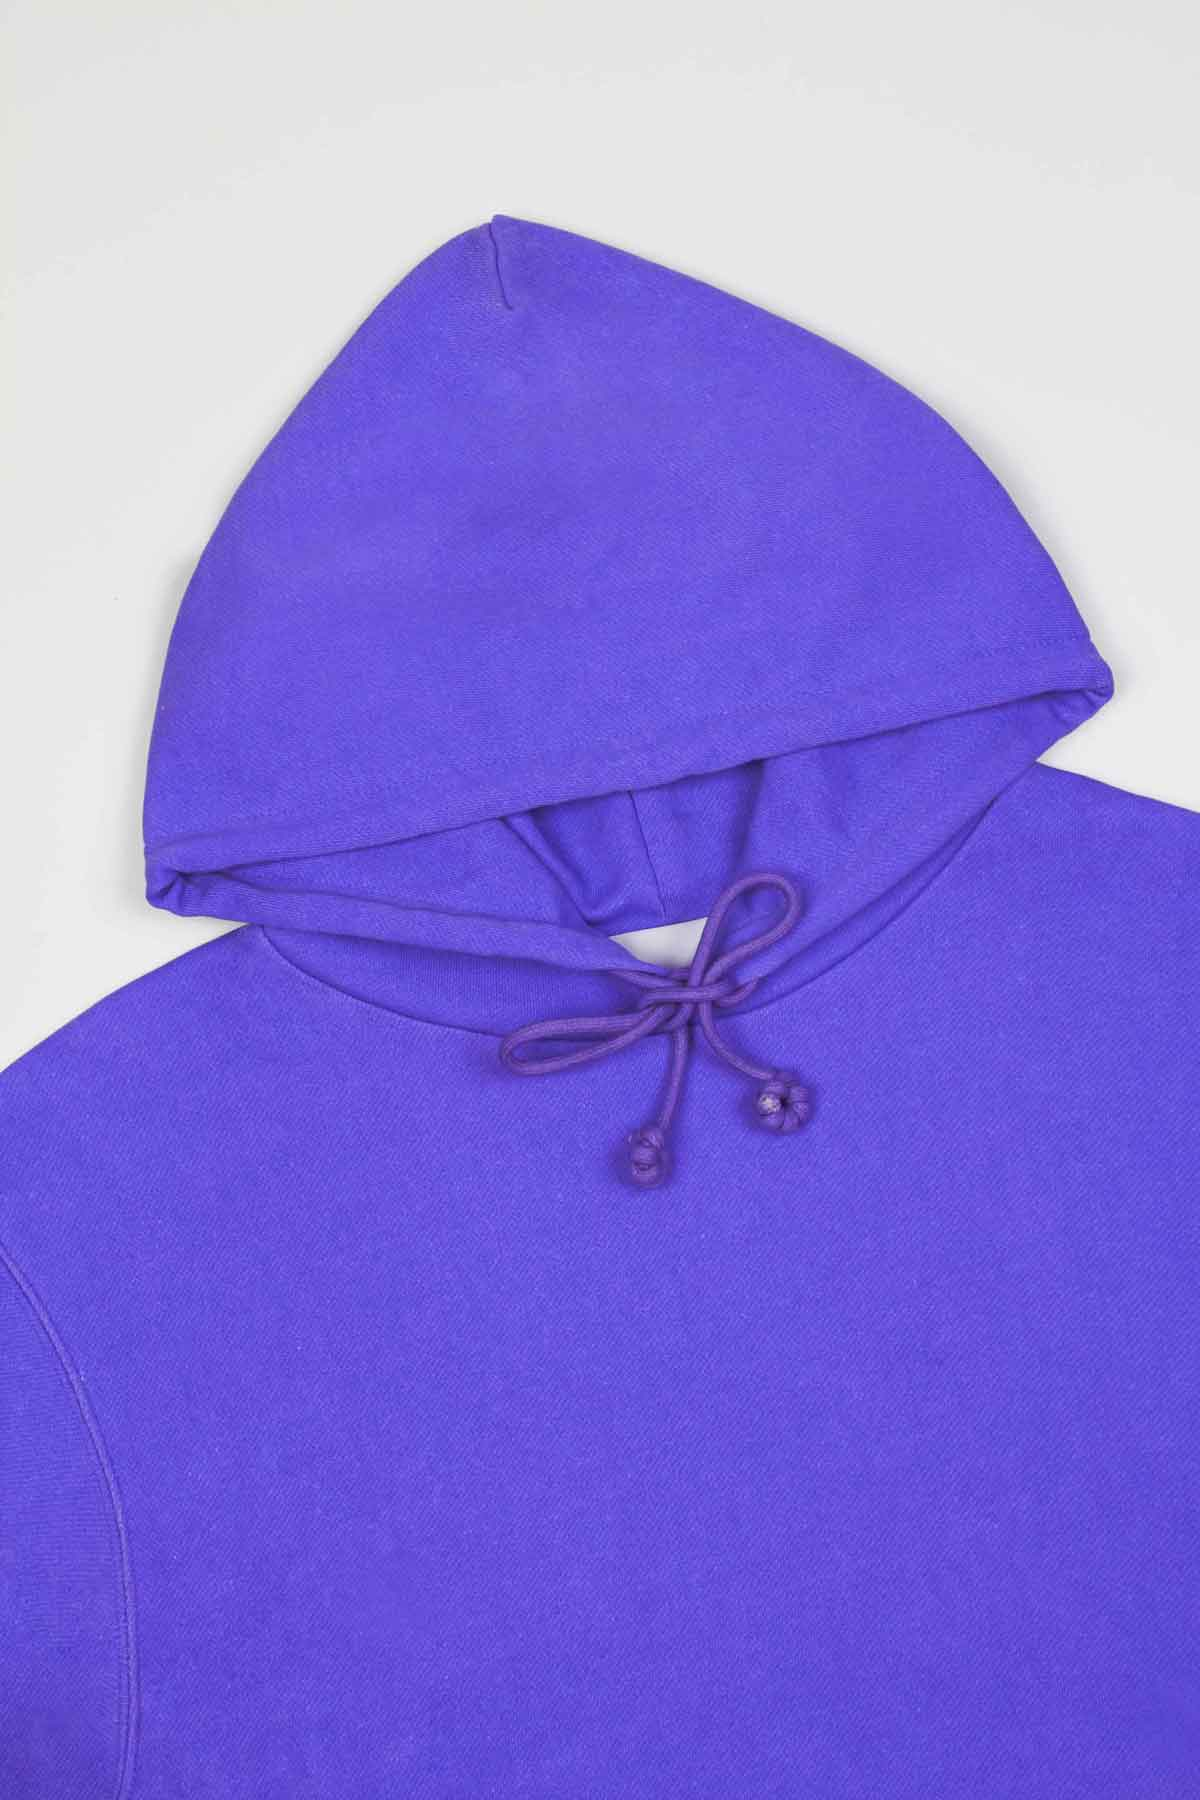 Photo of Violet Kush Women's Cropped Hoodie, number 6